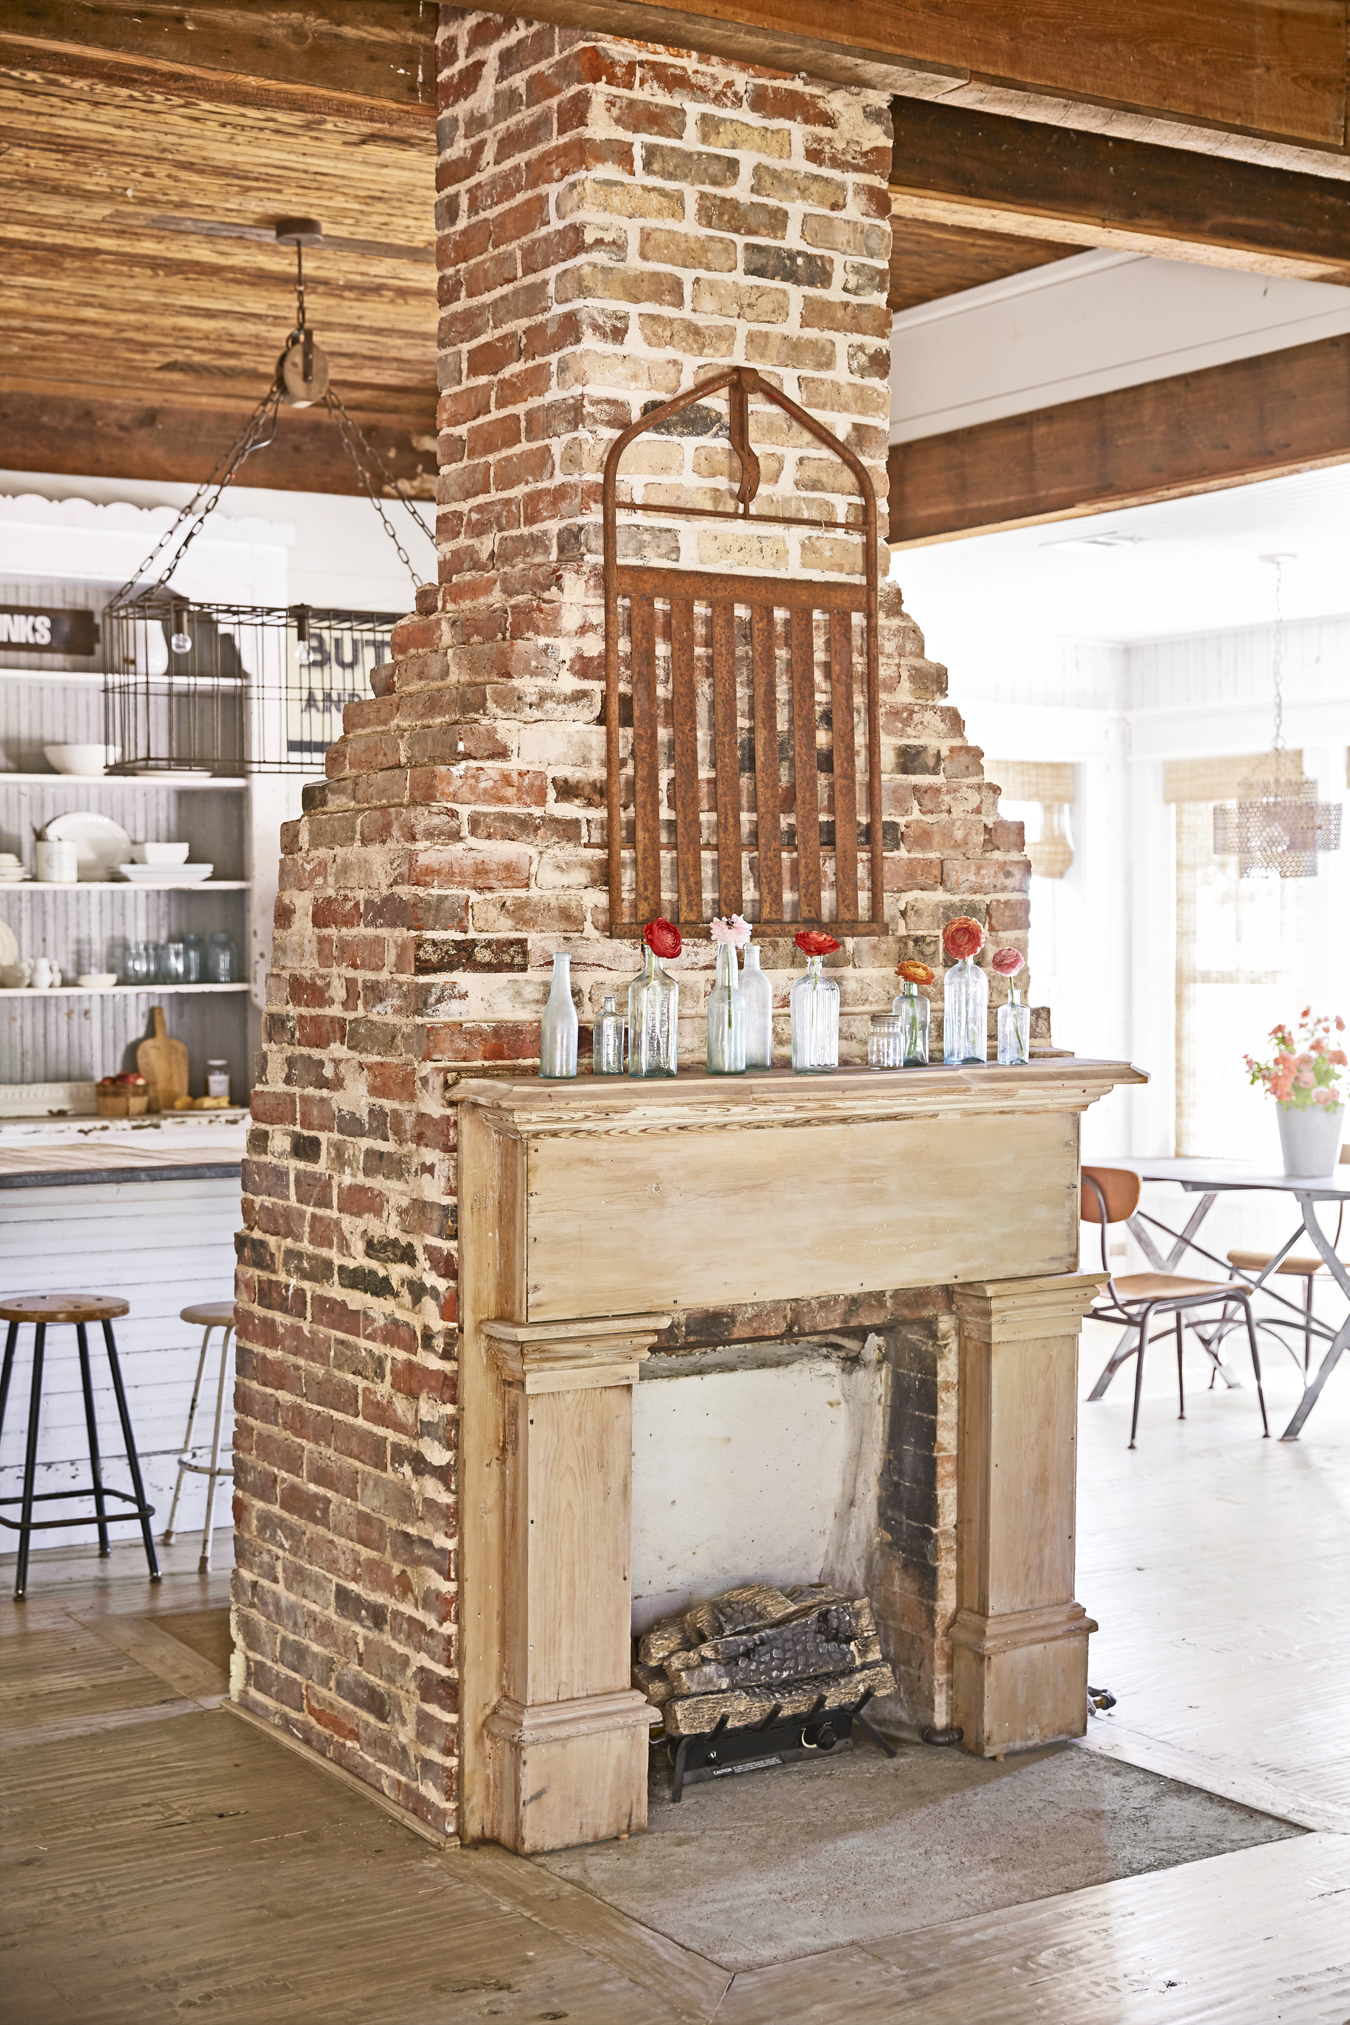 Old Farmhouse Fireplaces 40 Fireplace Design Ideas Fireplace Mantel Decorating Ideas